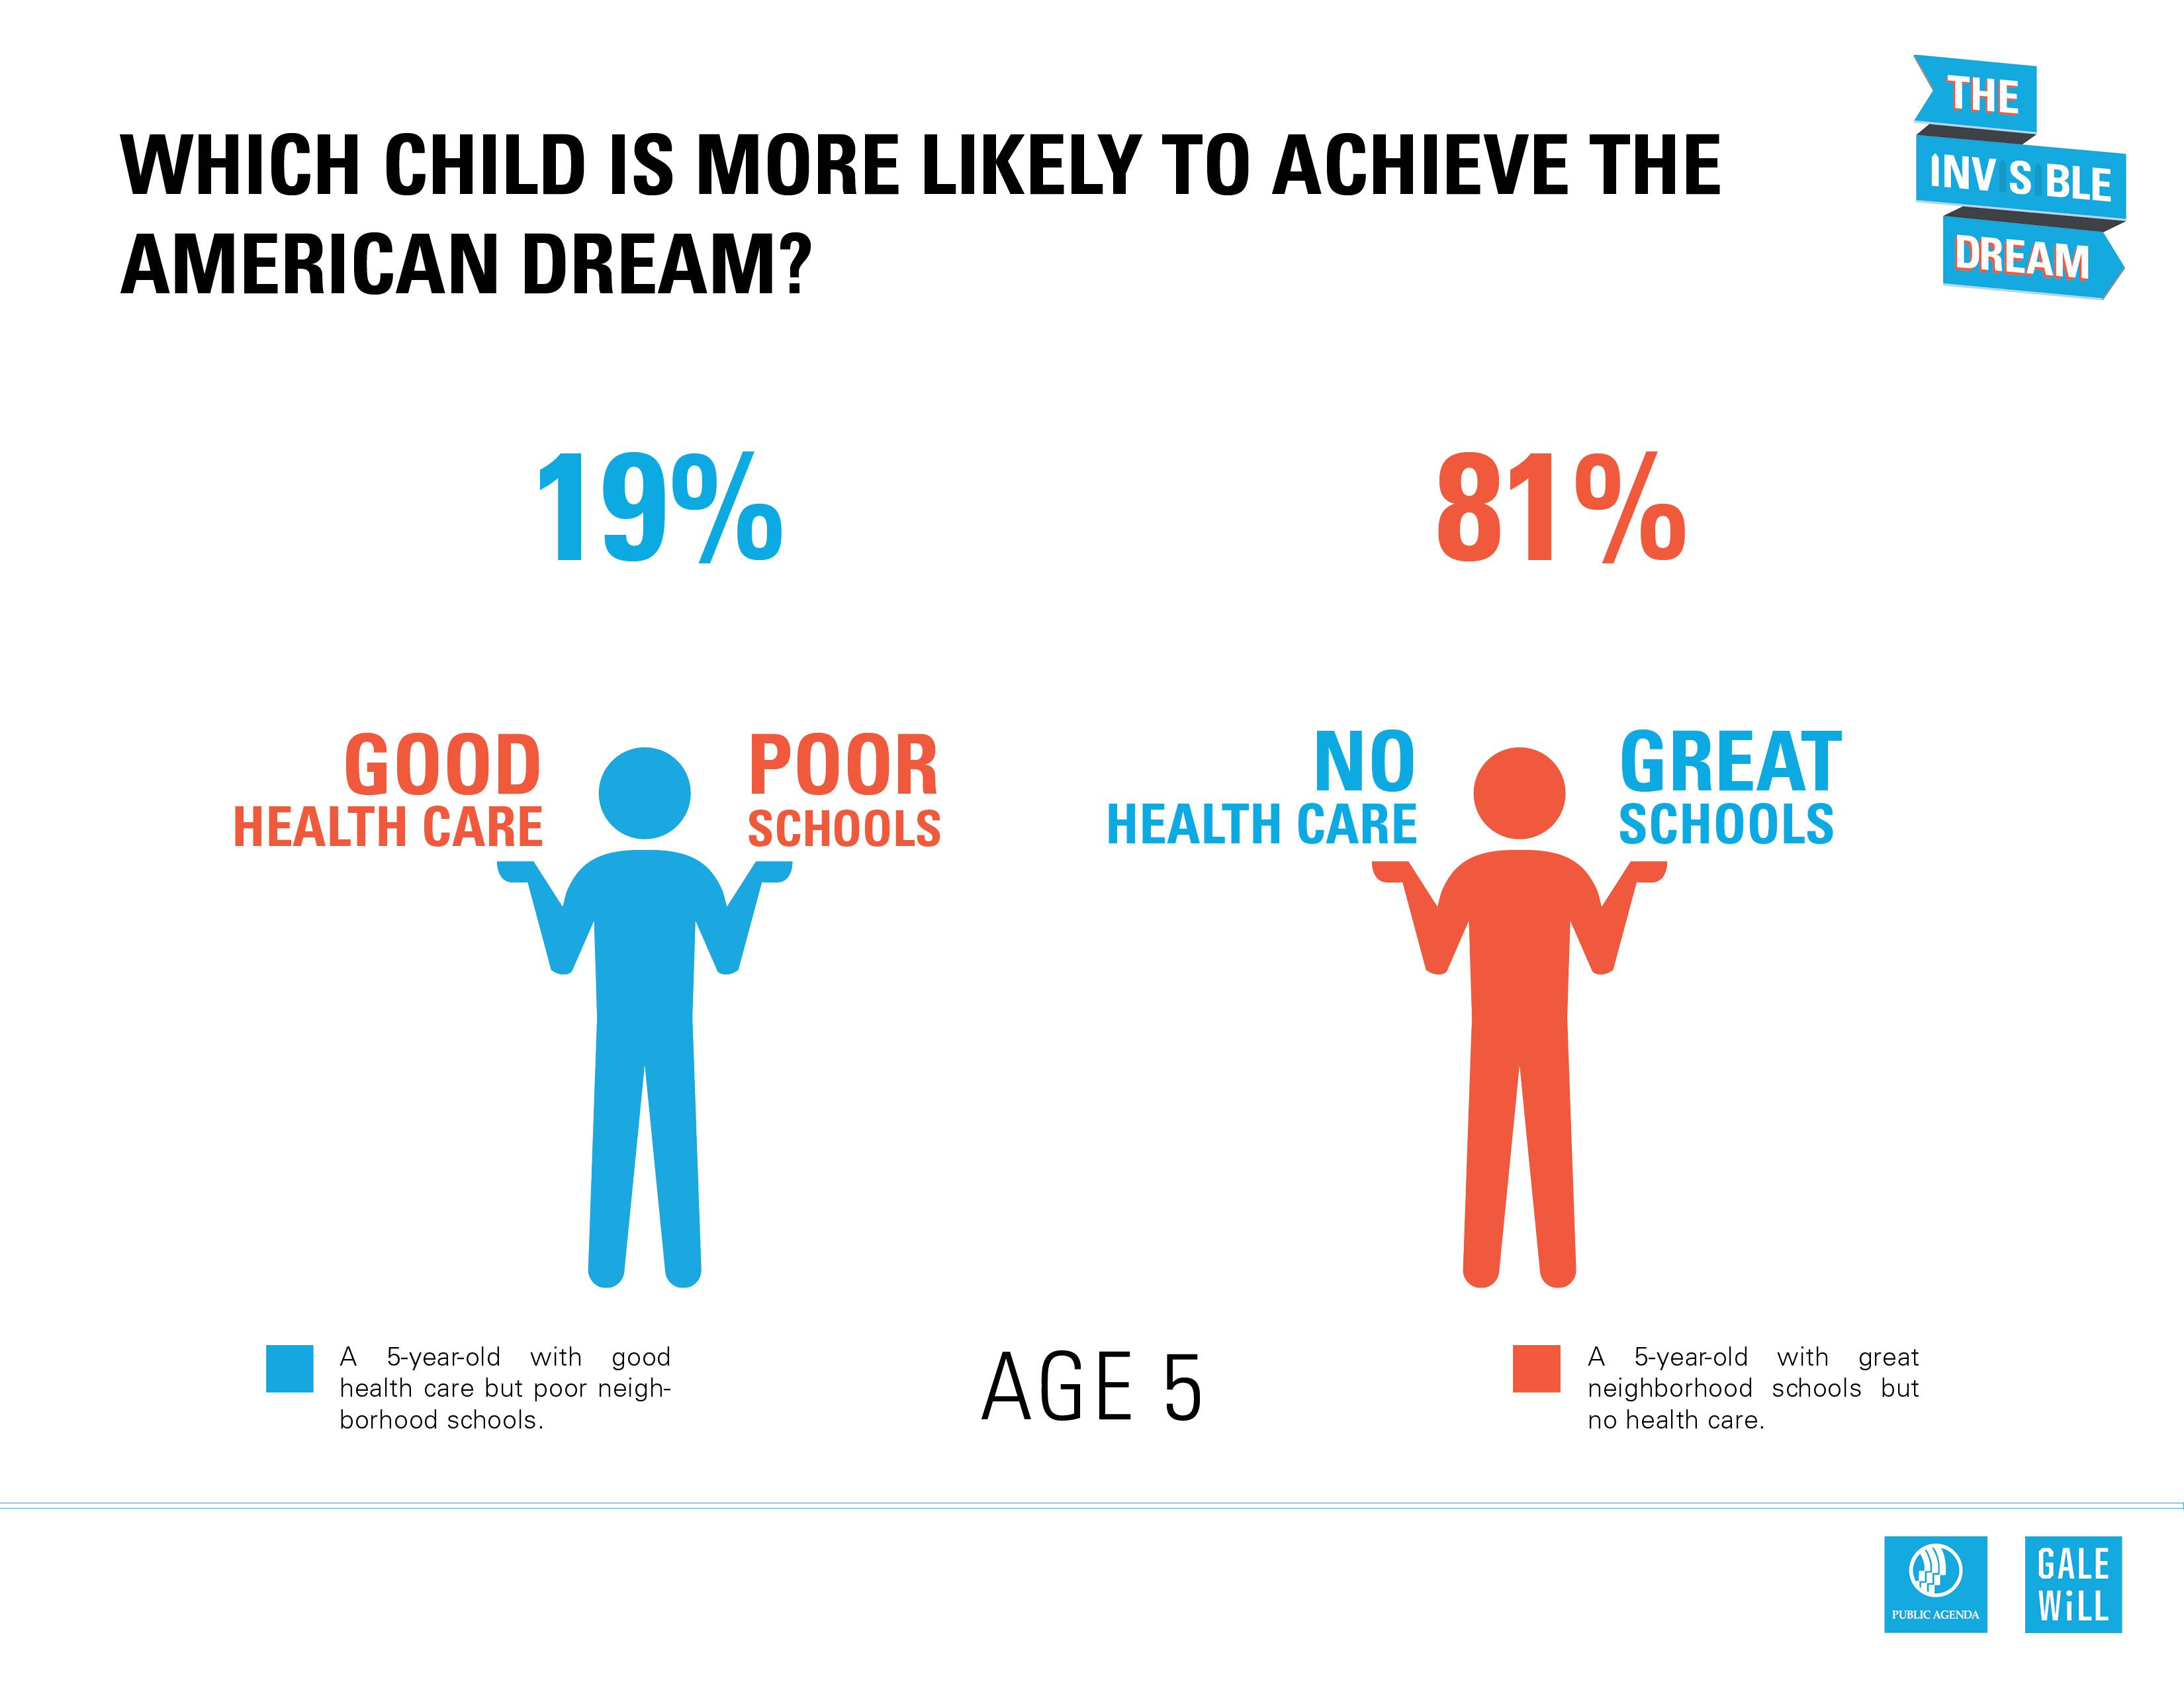 Who Is More Likely To Achieve The American Dream